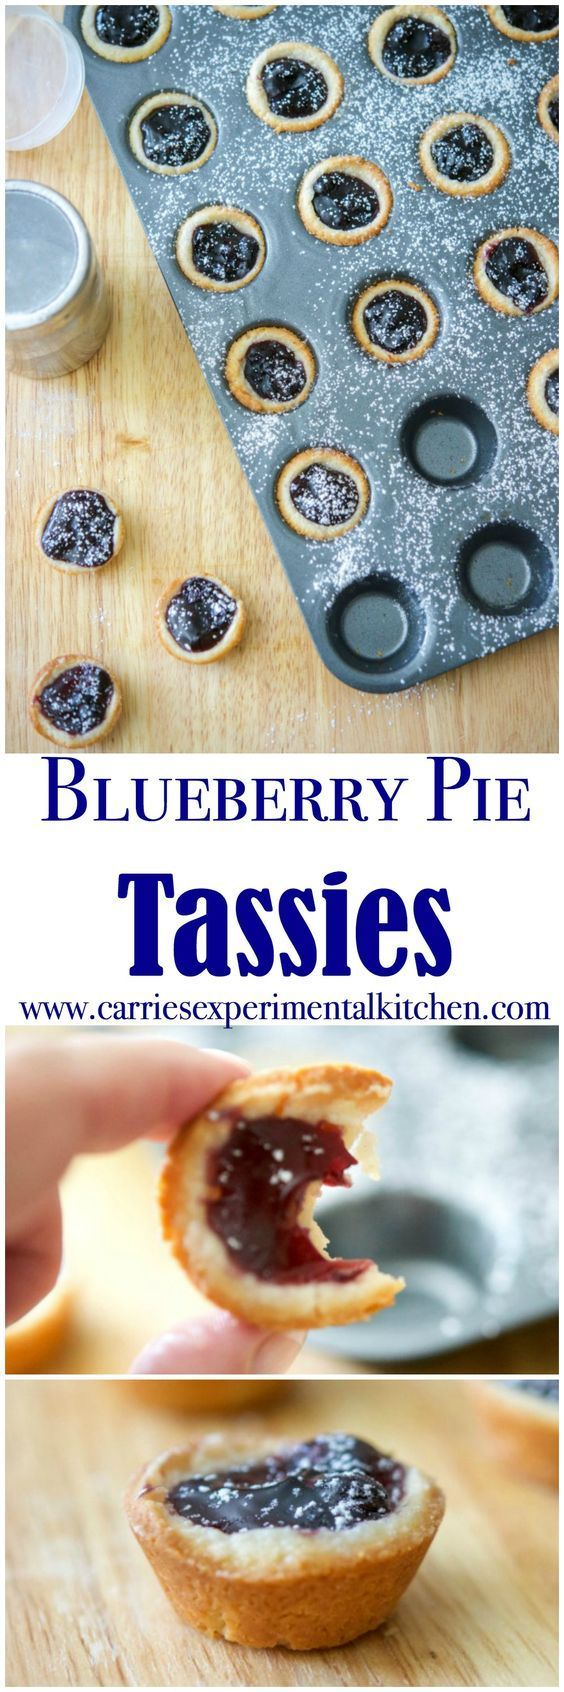 Blueberry Pie Tassies are a simple, small portioned dessert, similar to a cream cheese cookie; then filled with your favorite pie filling. They taste like bite sized version of blueberry pie.